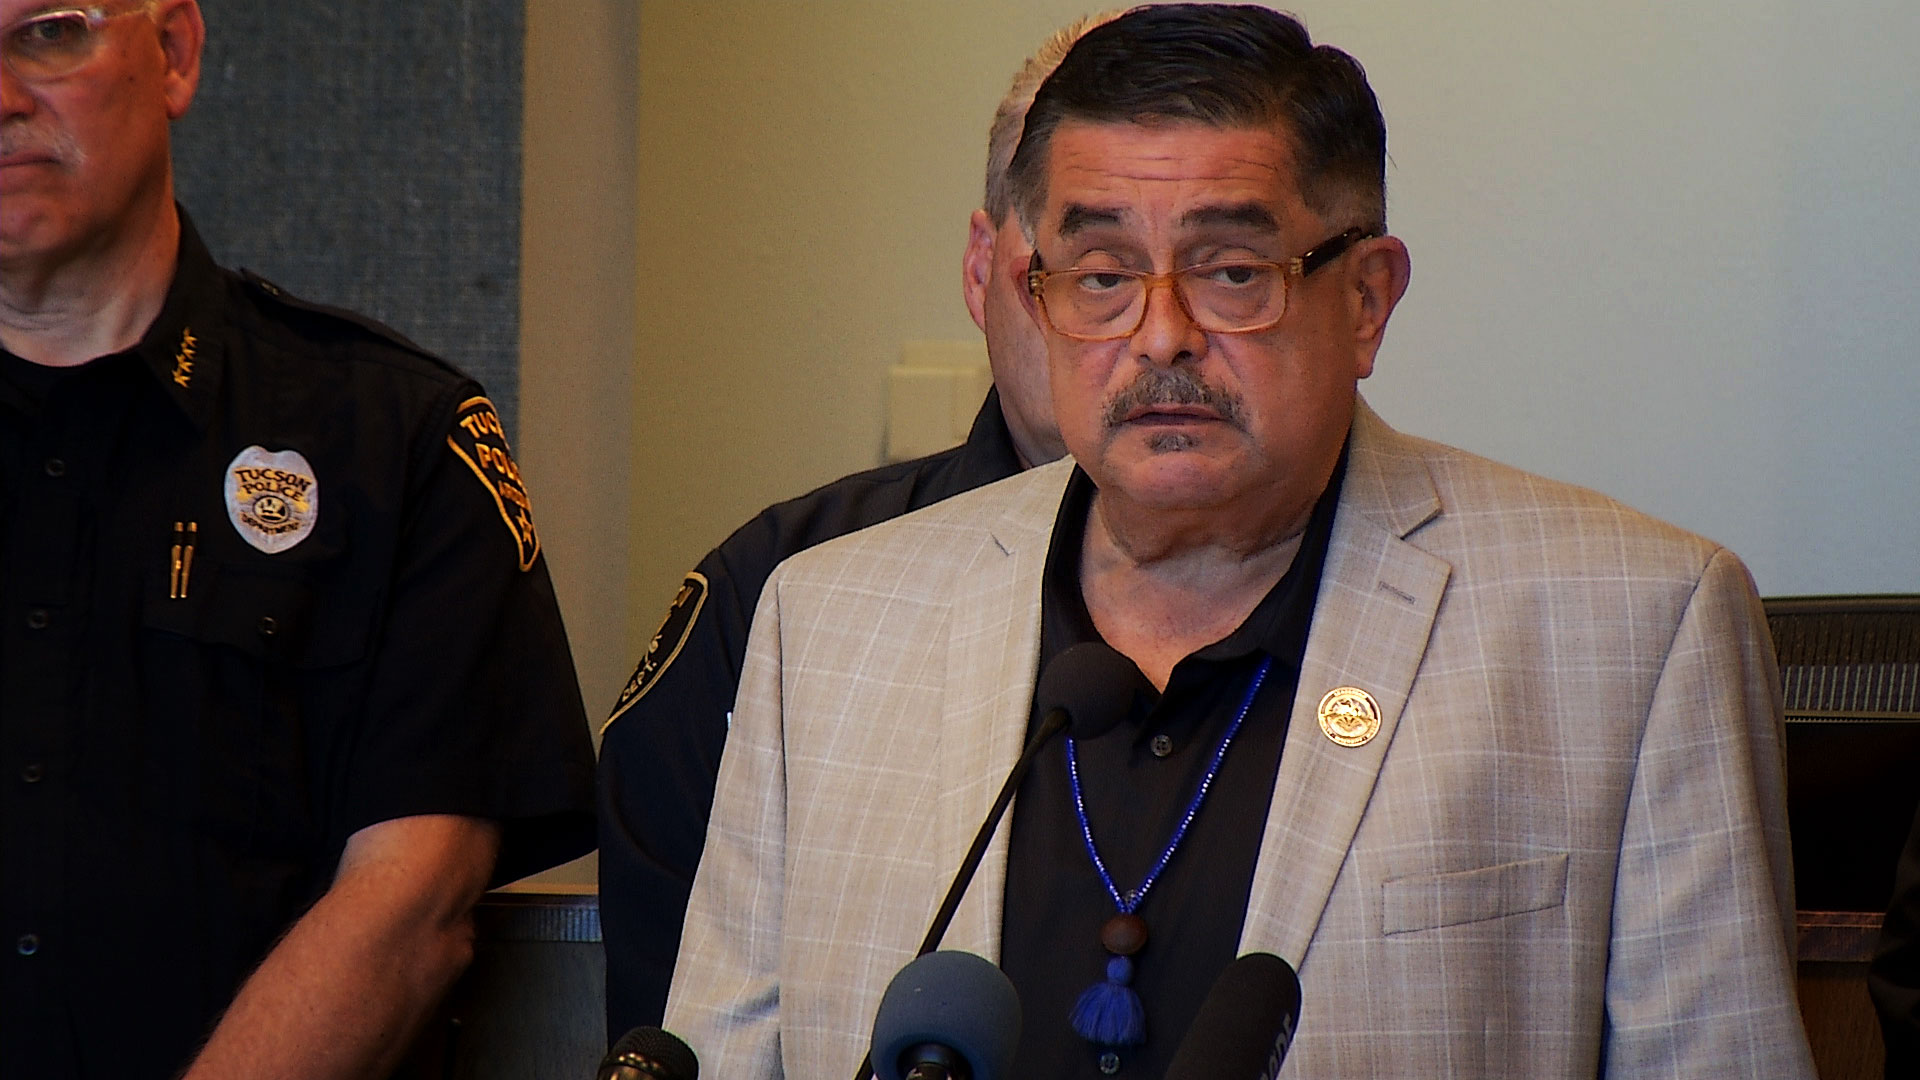 Pima County Board of Supervisors Chairman Richard Elías speaks during a press conference with county and city of Tucson leaders about COVID-19 precautions on March 9, 2020.